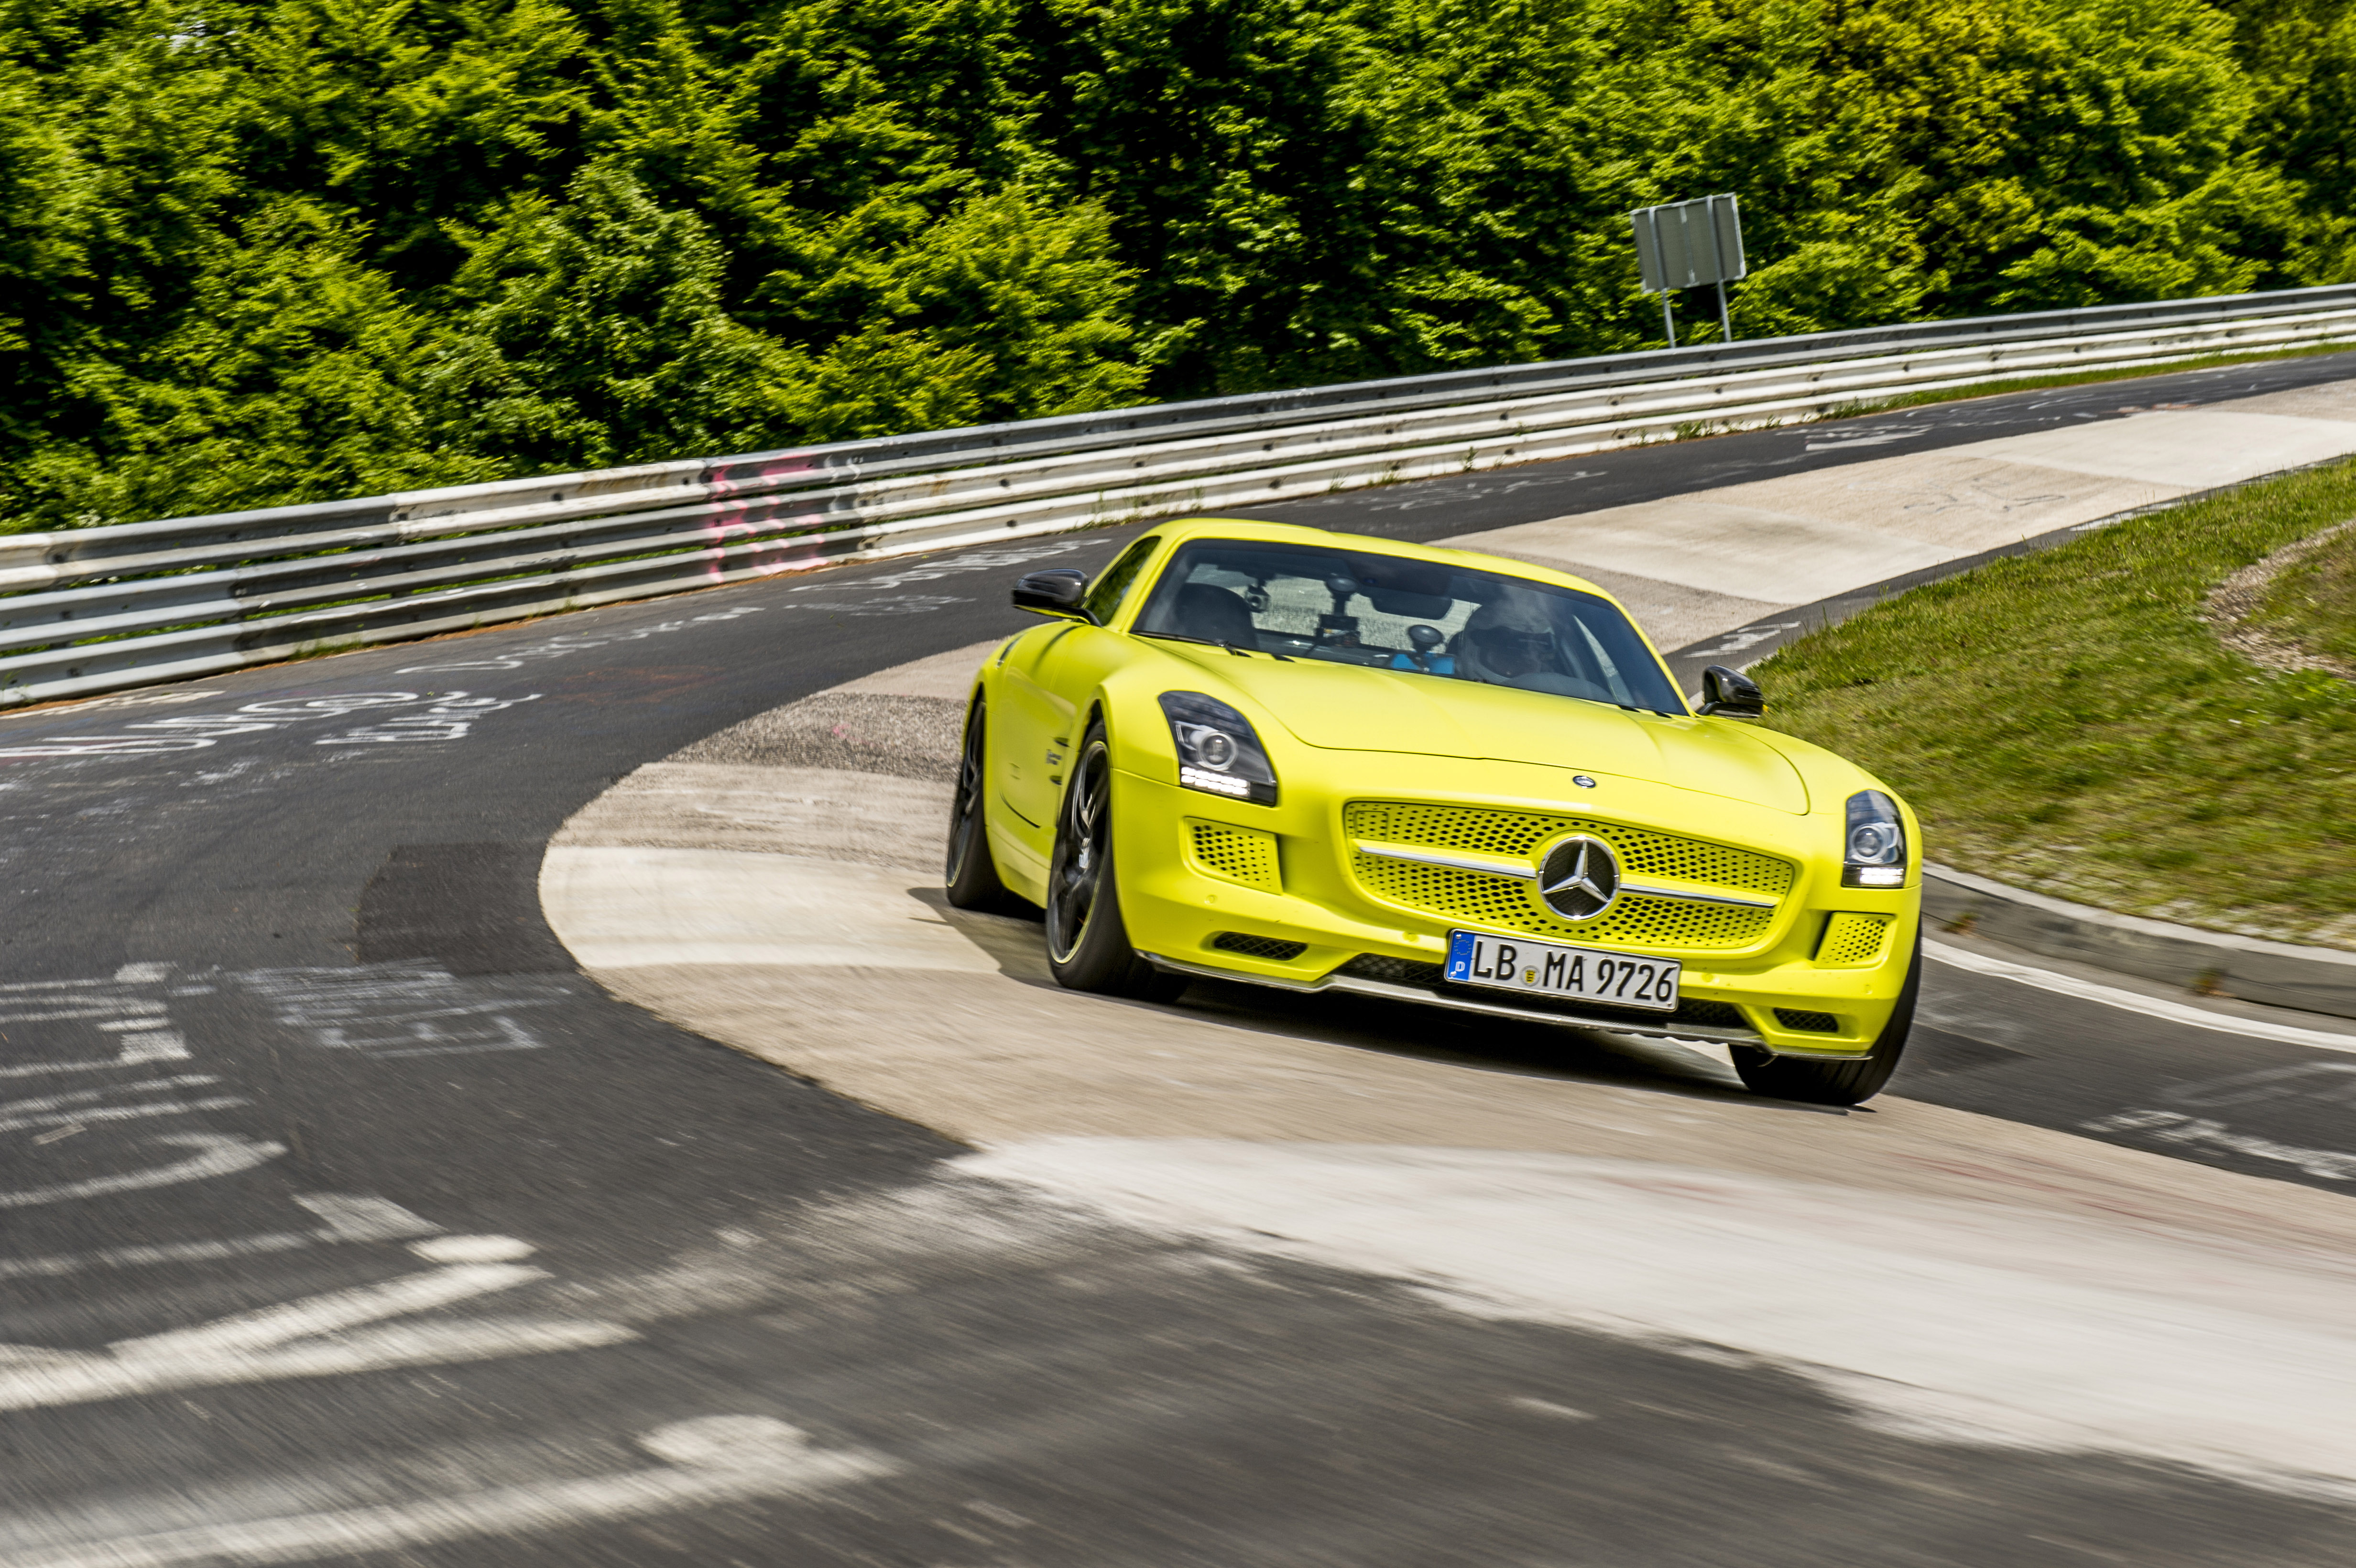 2014 mercedes benz sls amg coupe electric drive production car